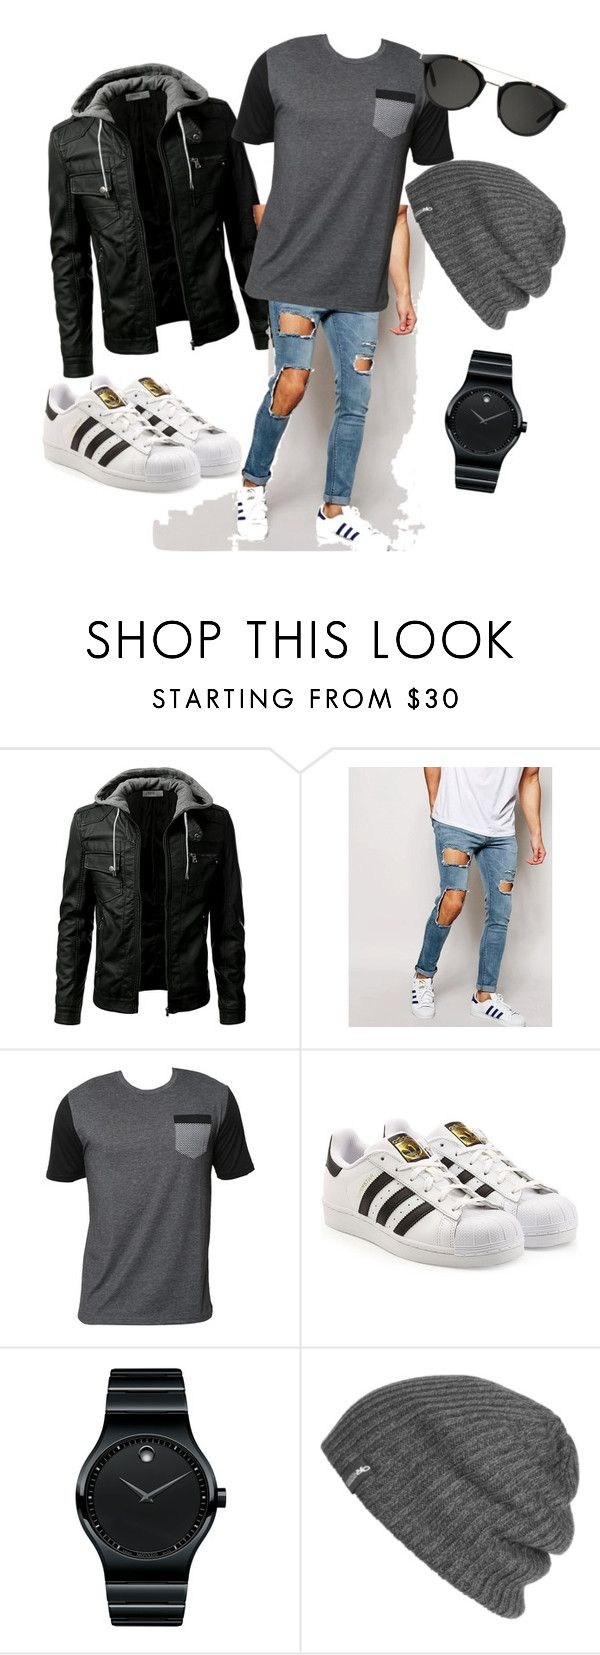 """""""Untitled #4"""" by dominyka-januzyte ❤ liked on Polyvore featuring ASOS, Billabong, adidas Originals, Movado, Outdoor Research, Carrera, men's fashion and menswear"""